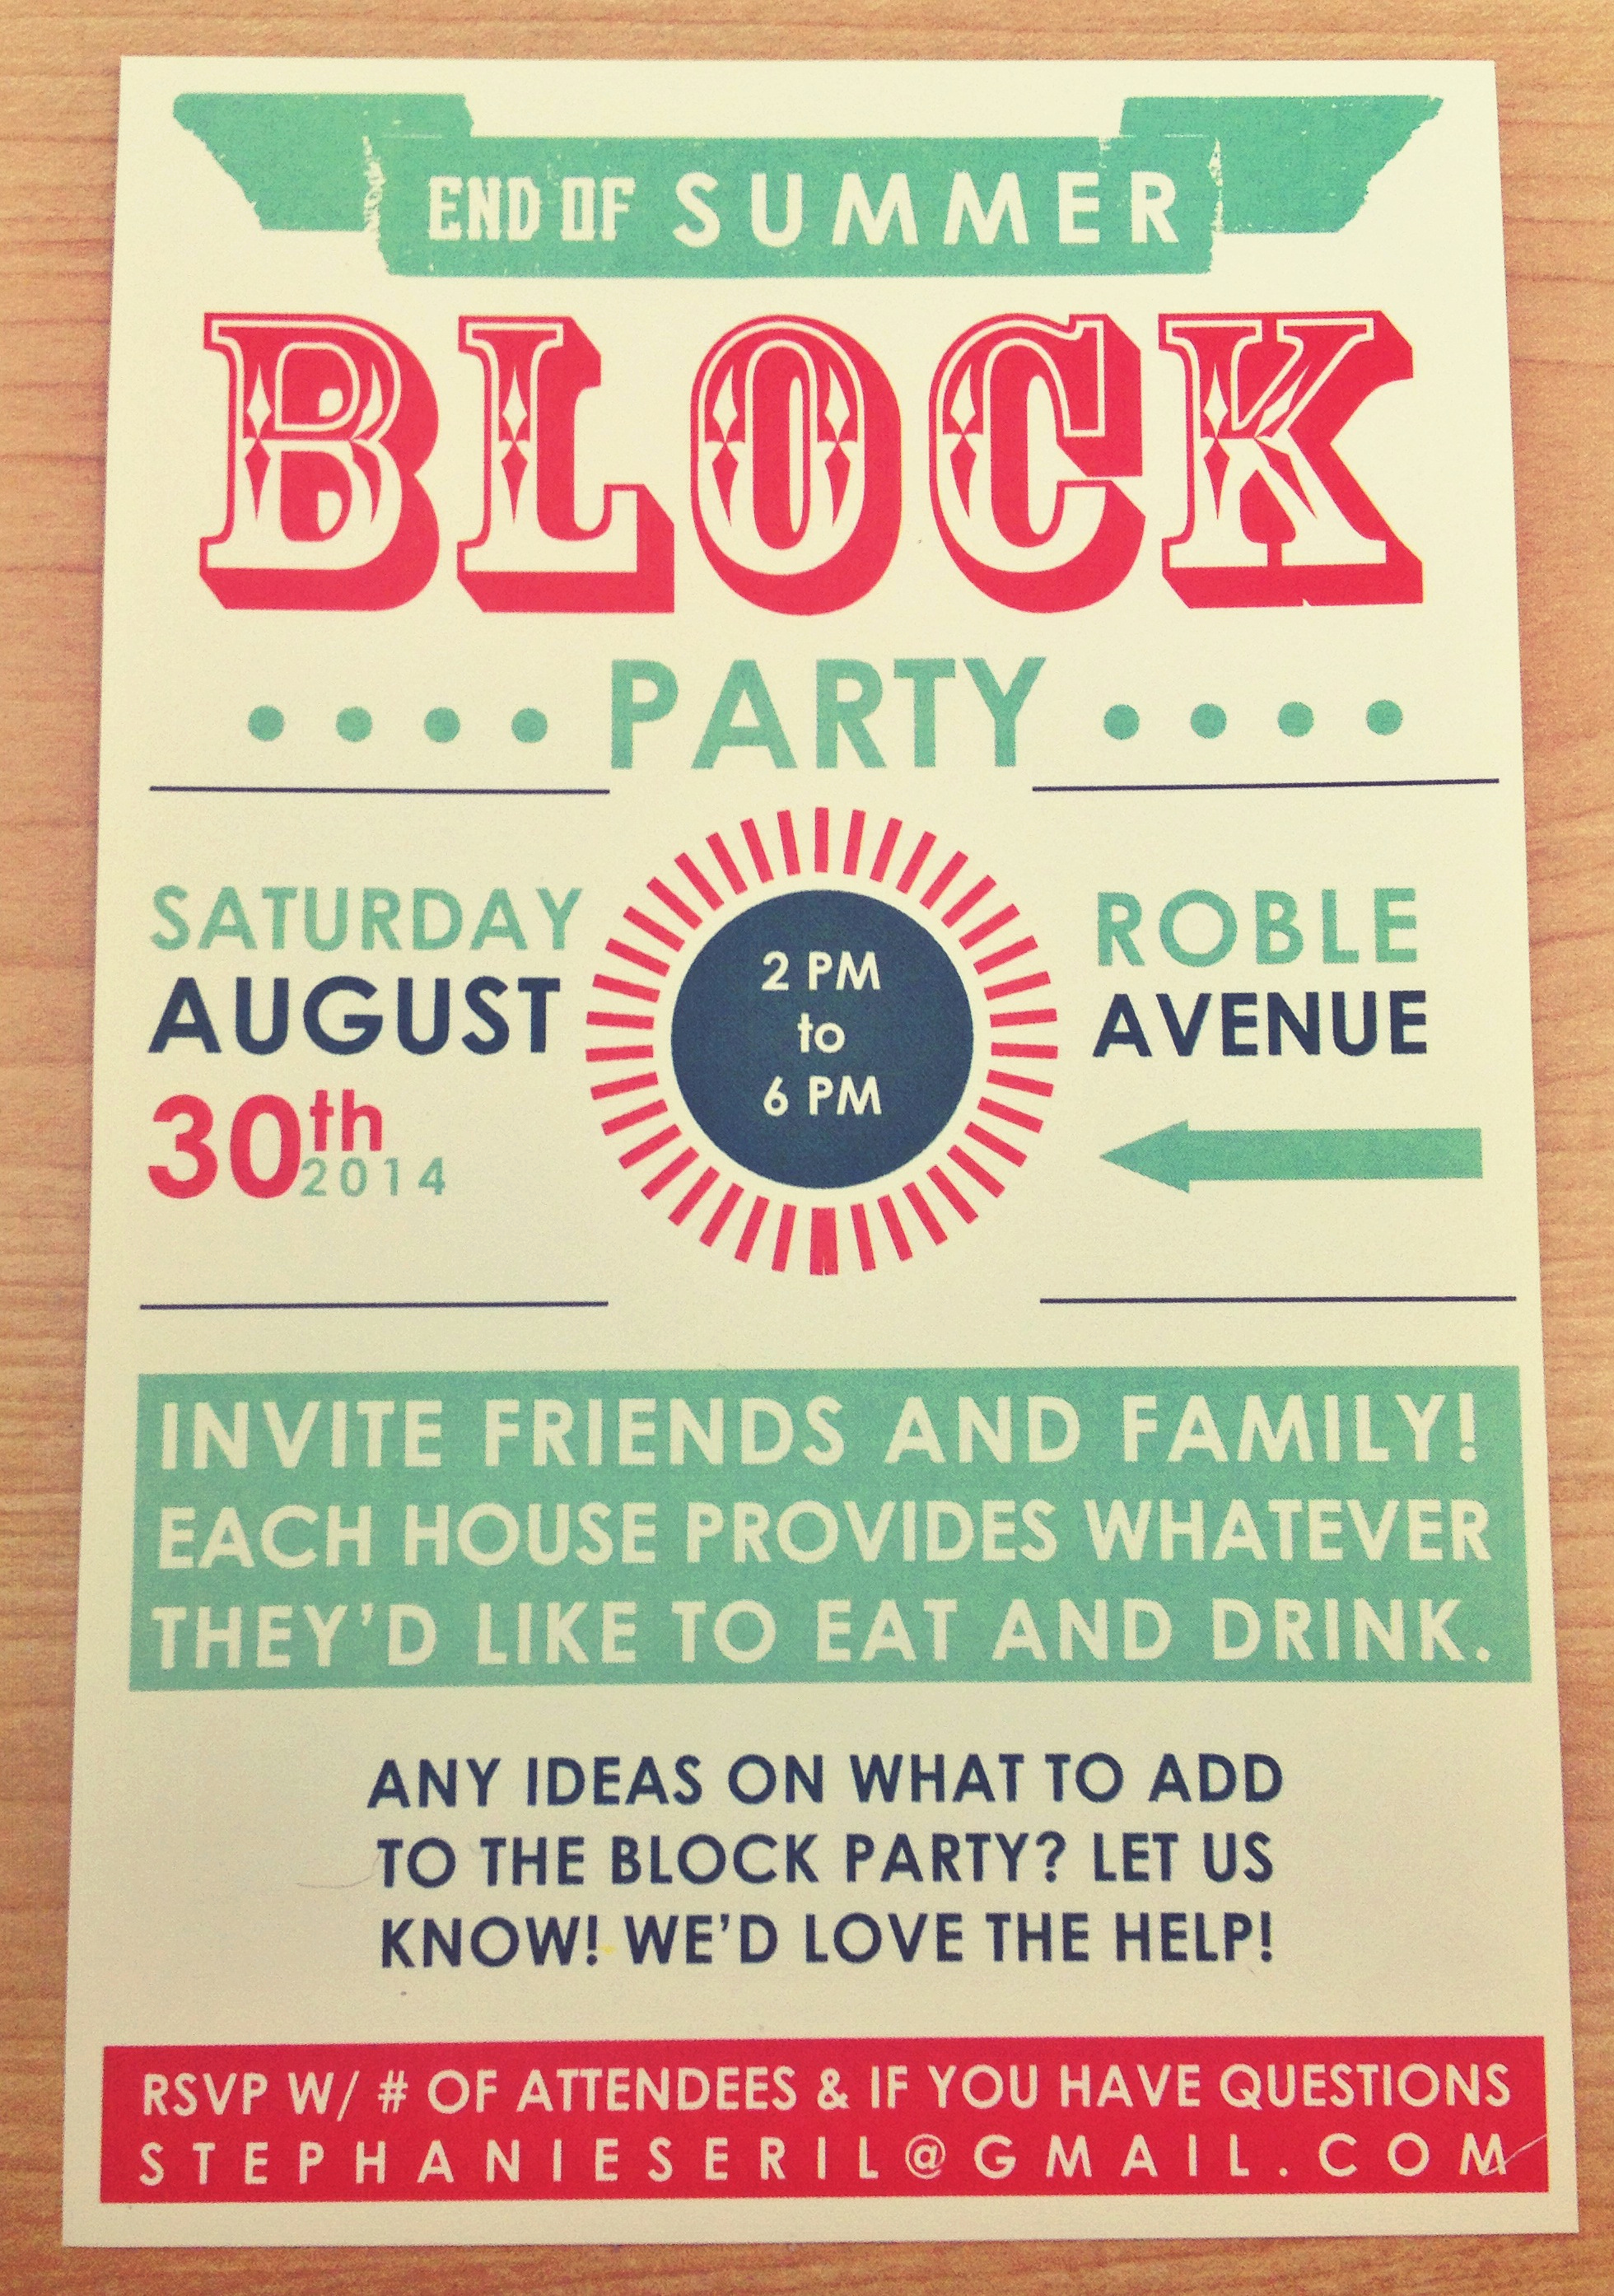 Block Party Invitation Template Beautiful End Of Summer Block Party